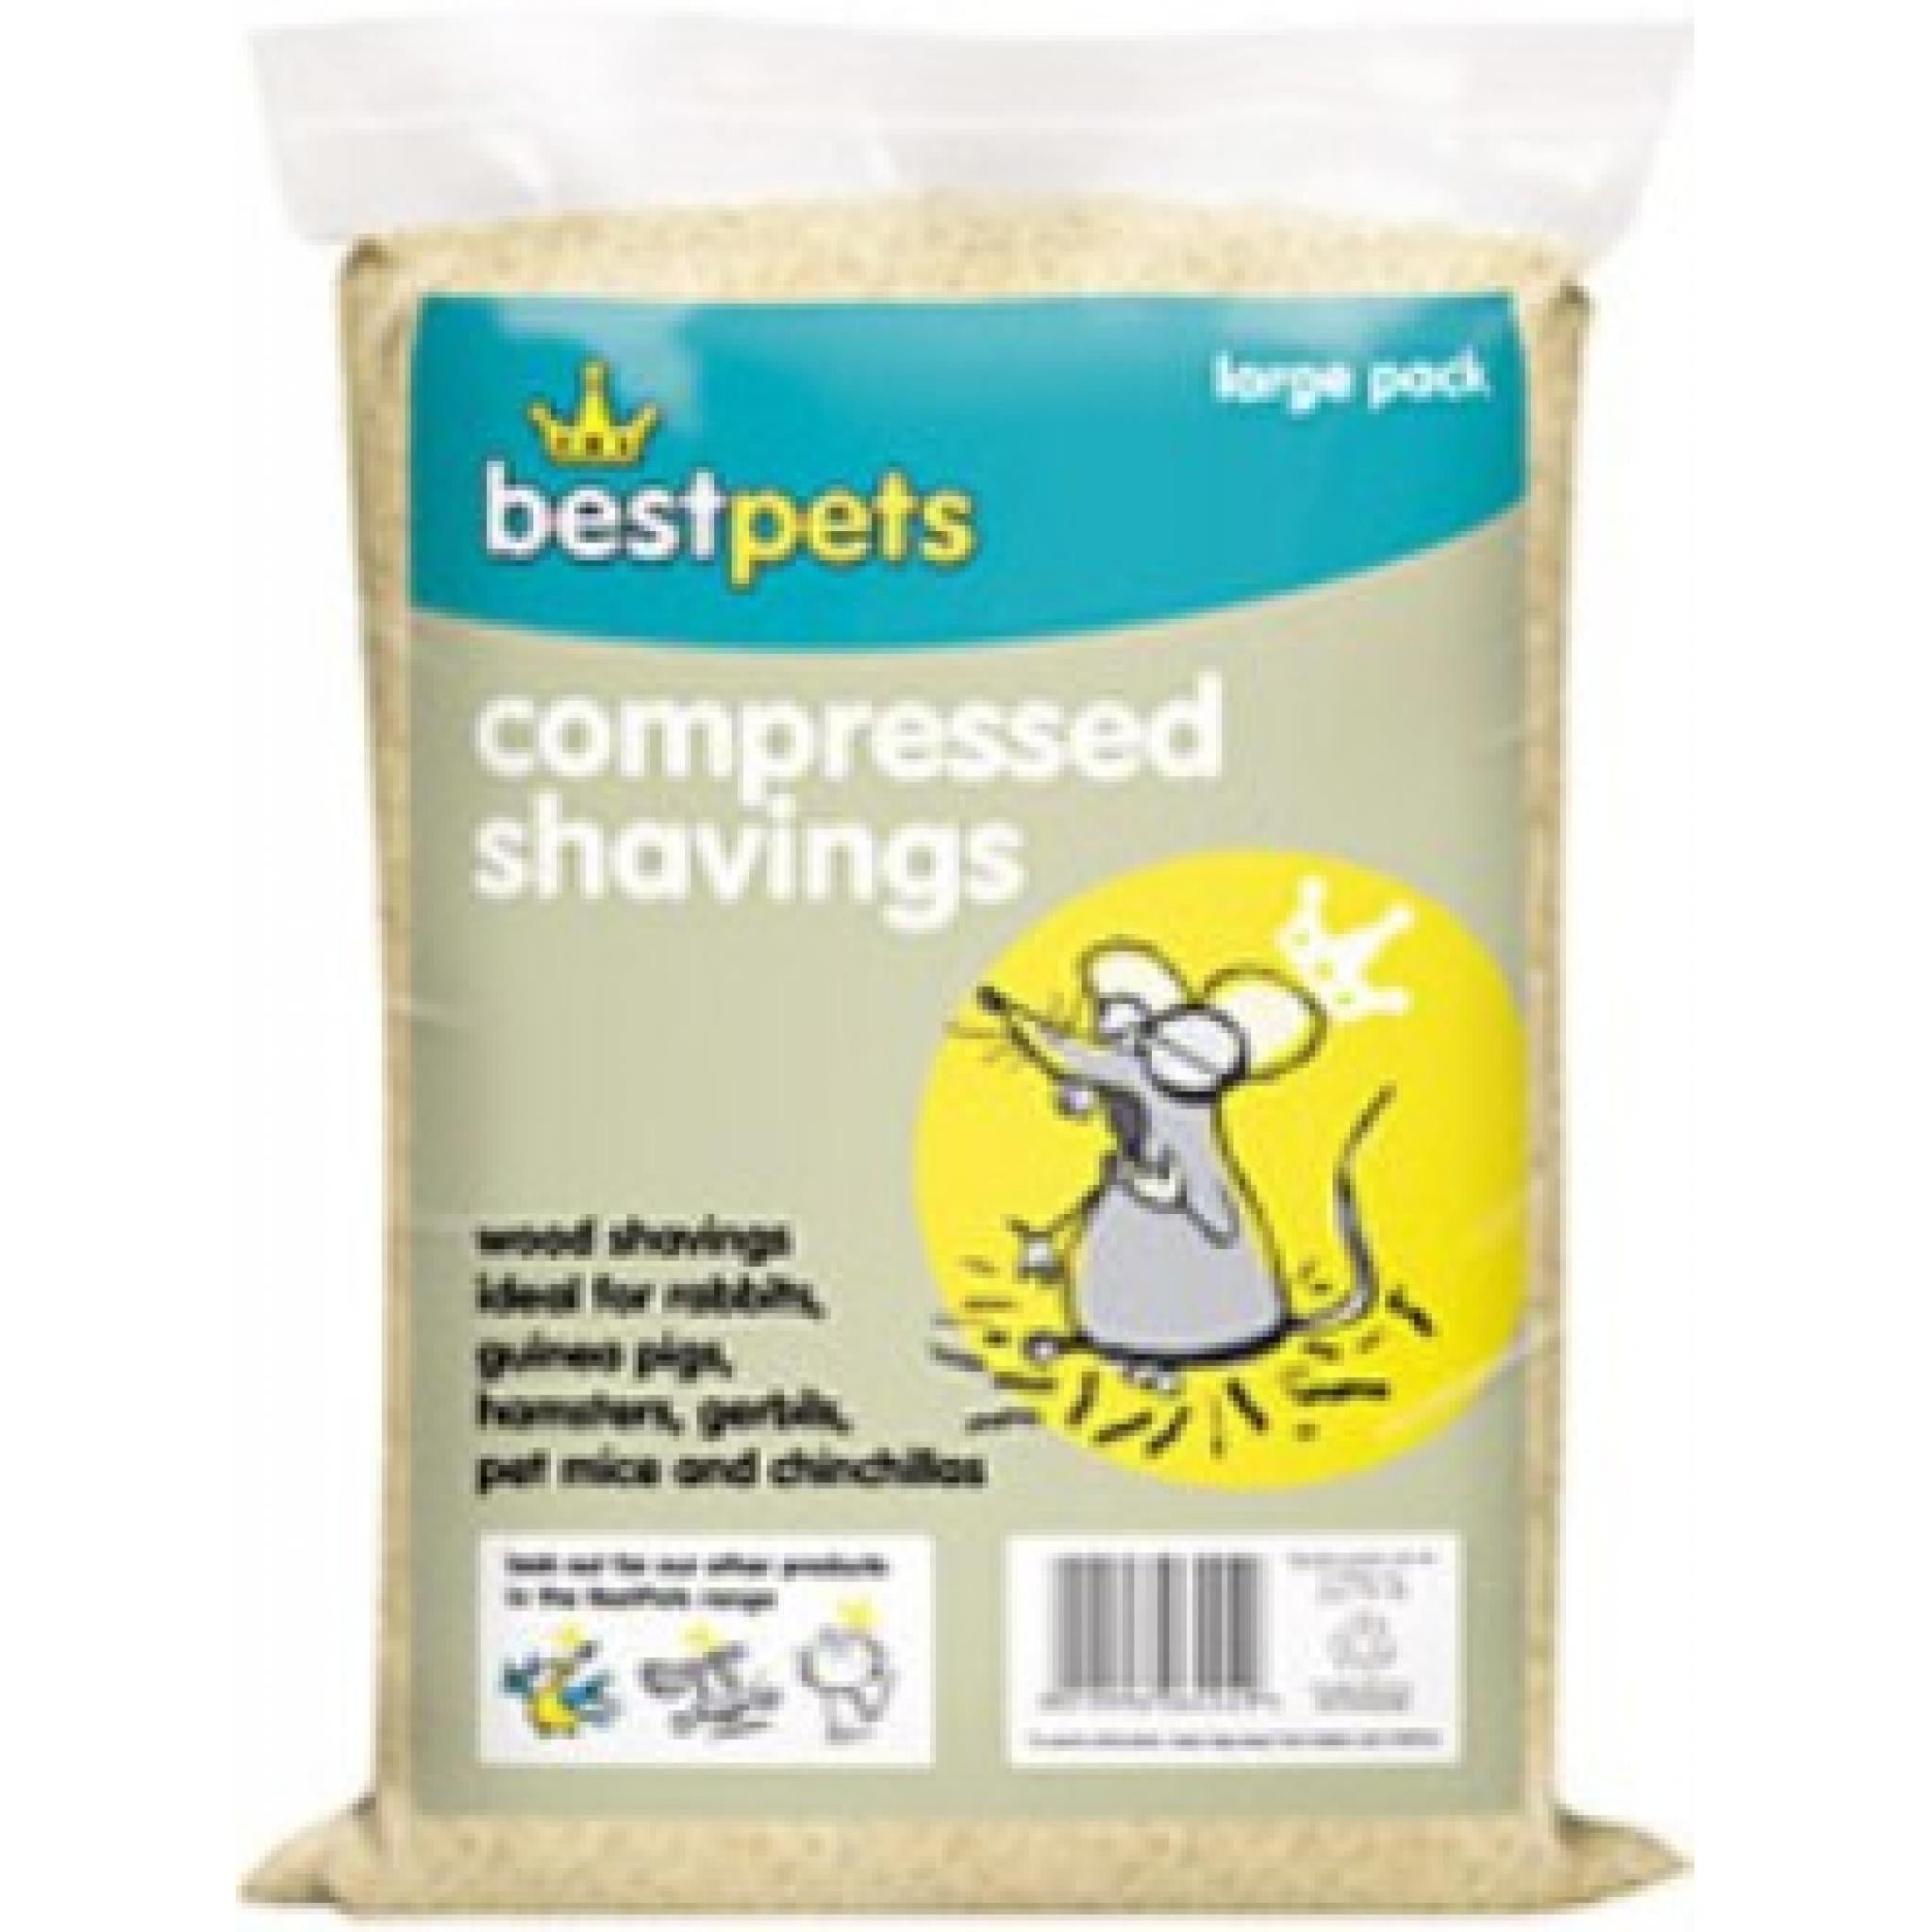 Bestpets Compressed Shavings